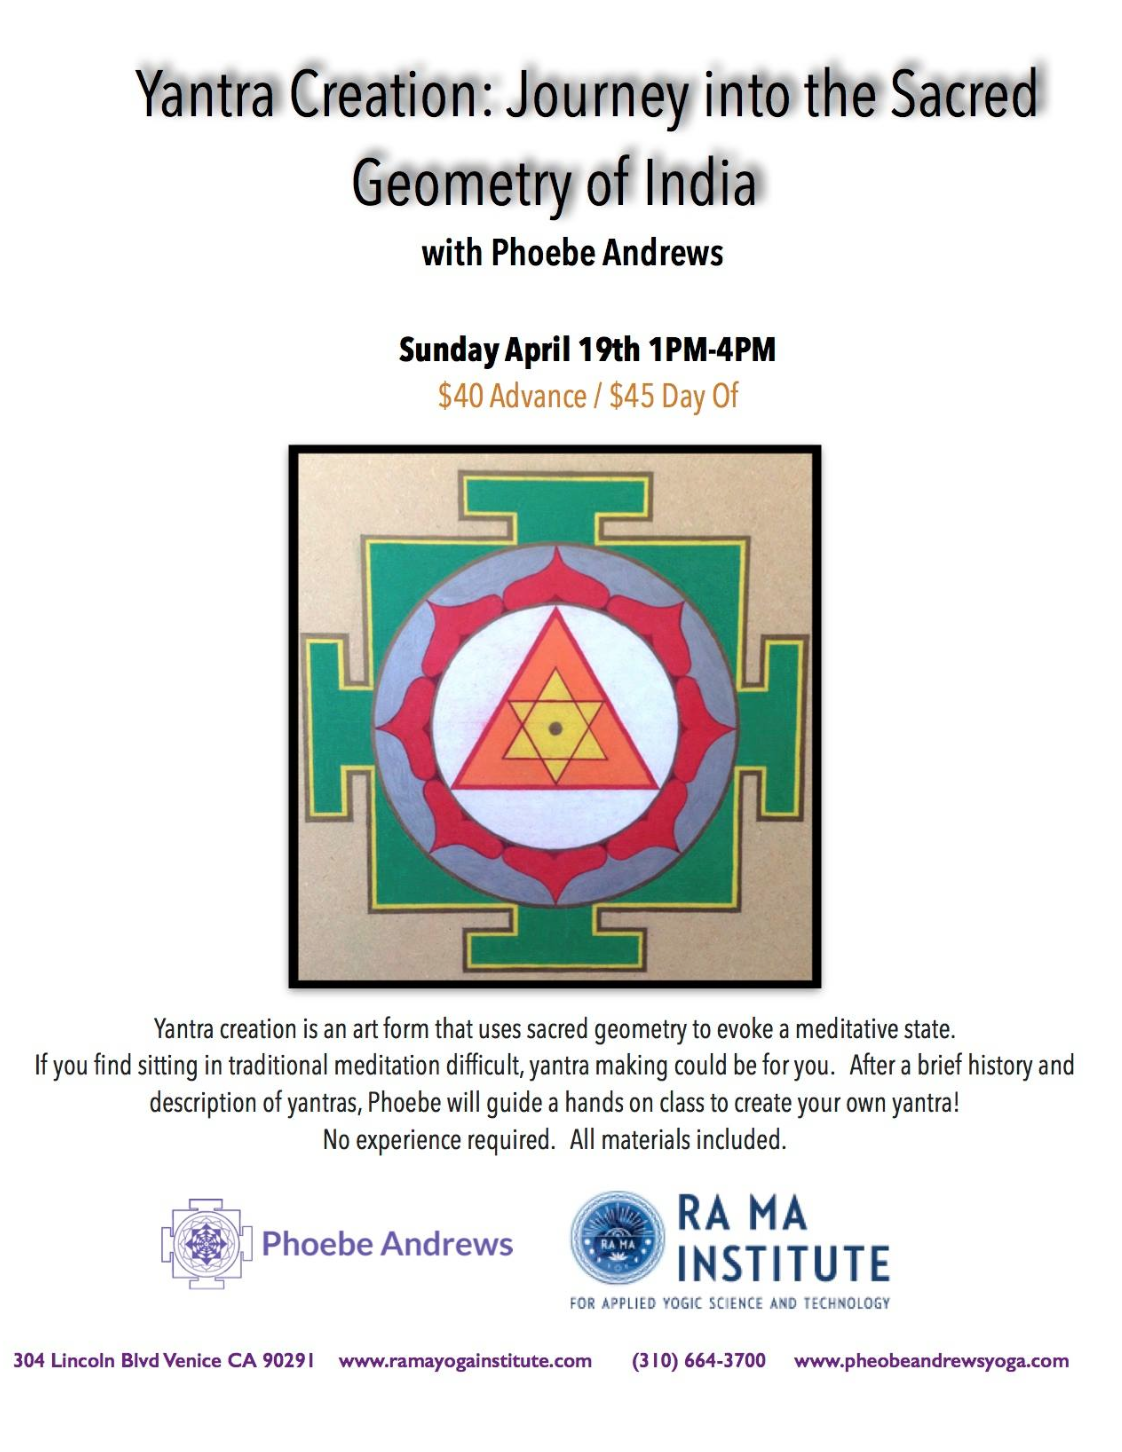 Yantra Event to Find Inner Peace April 19 • The Strange is